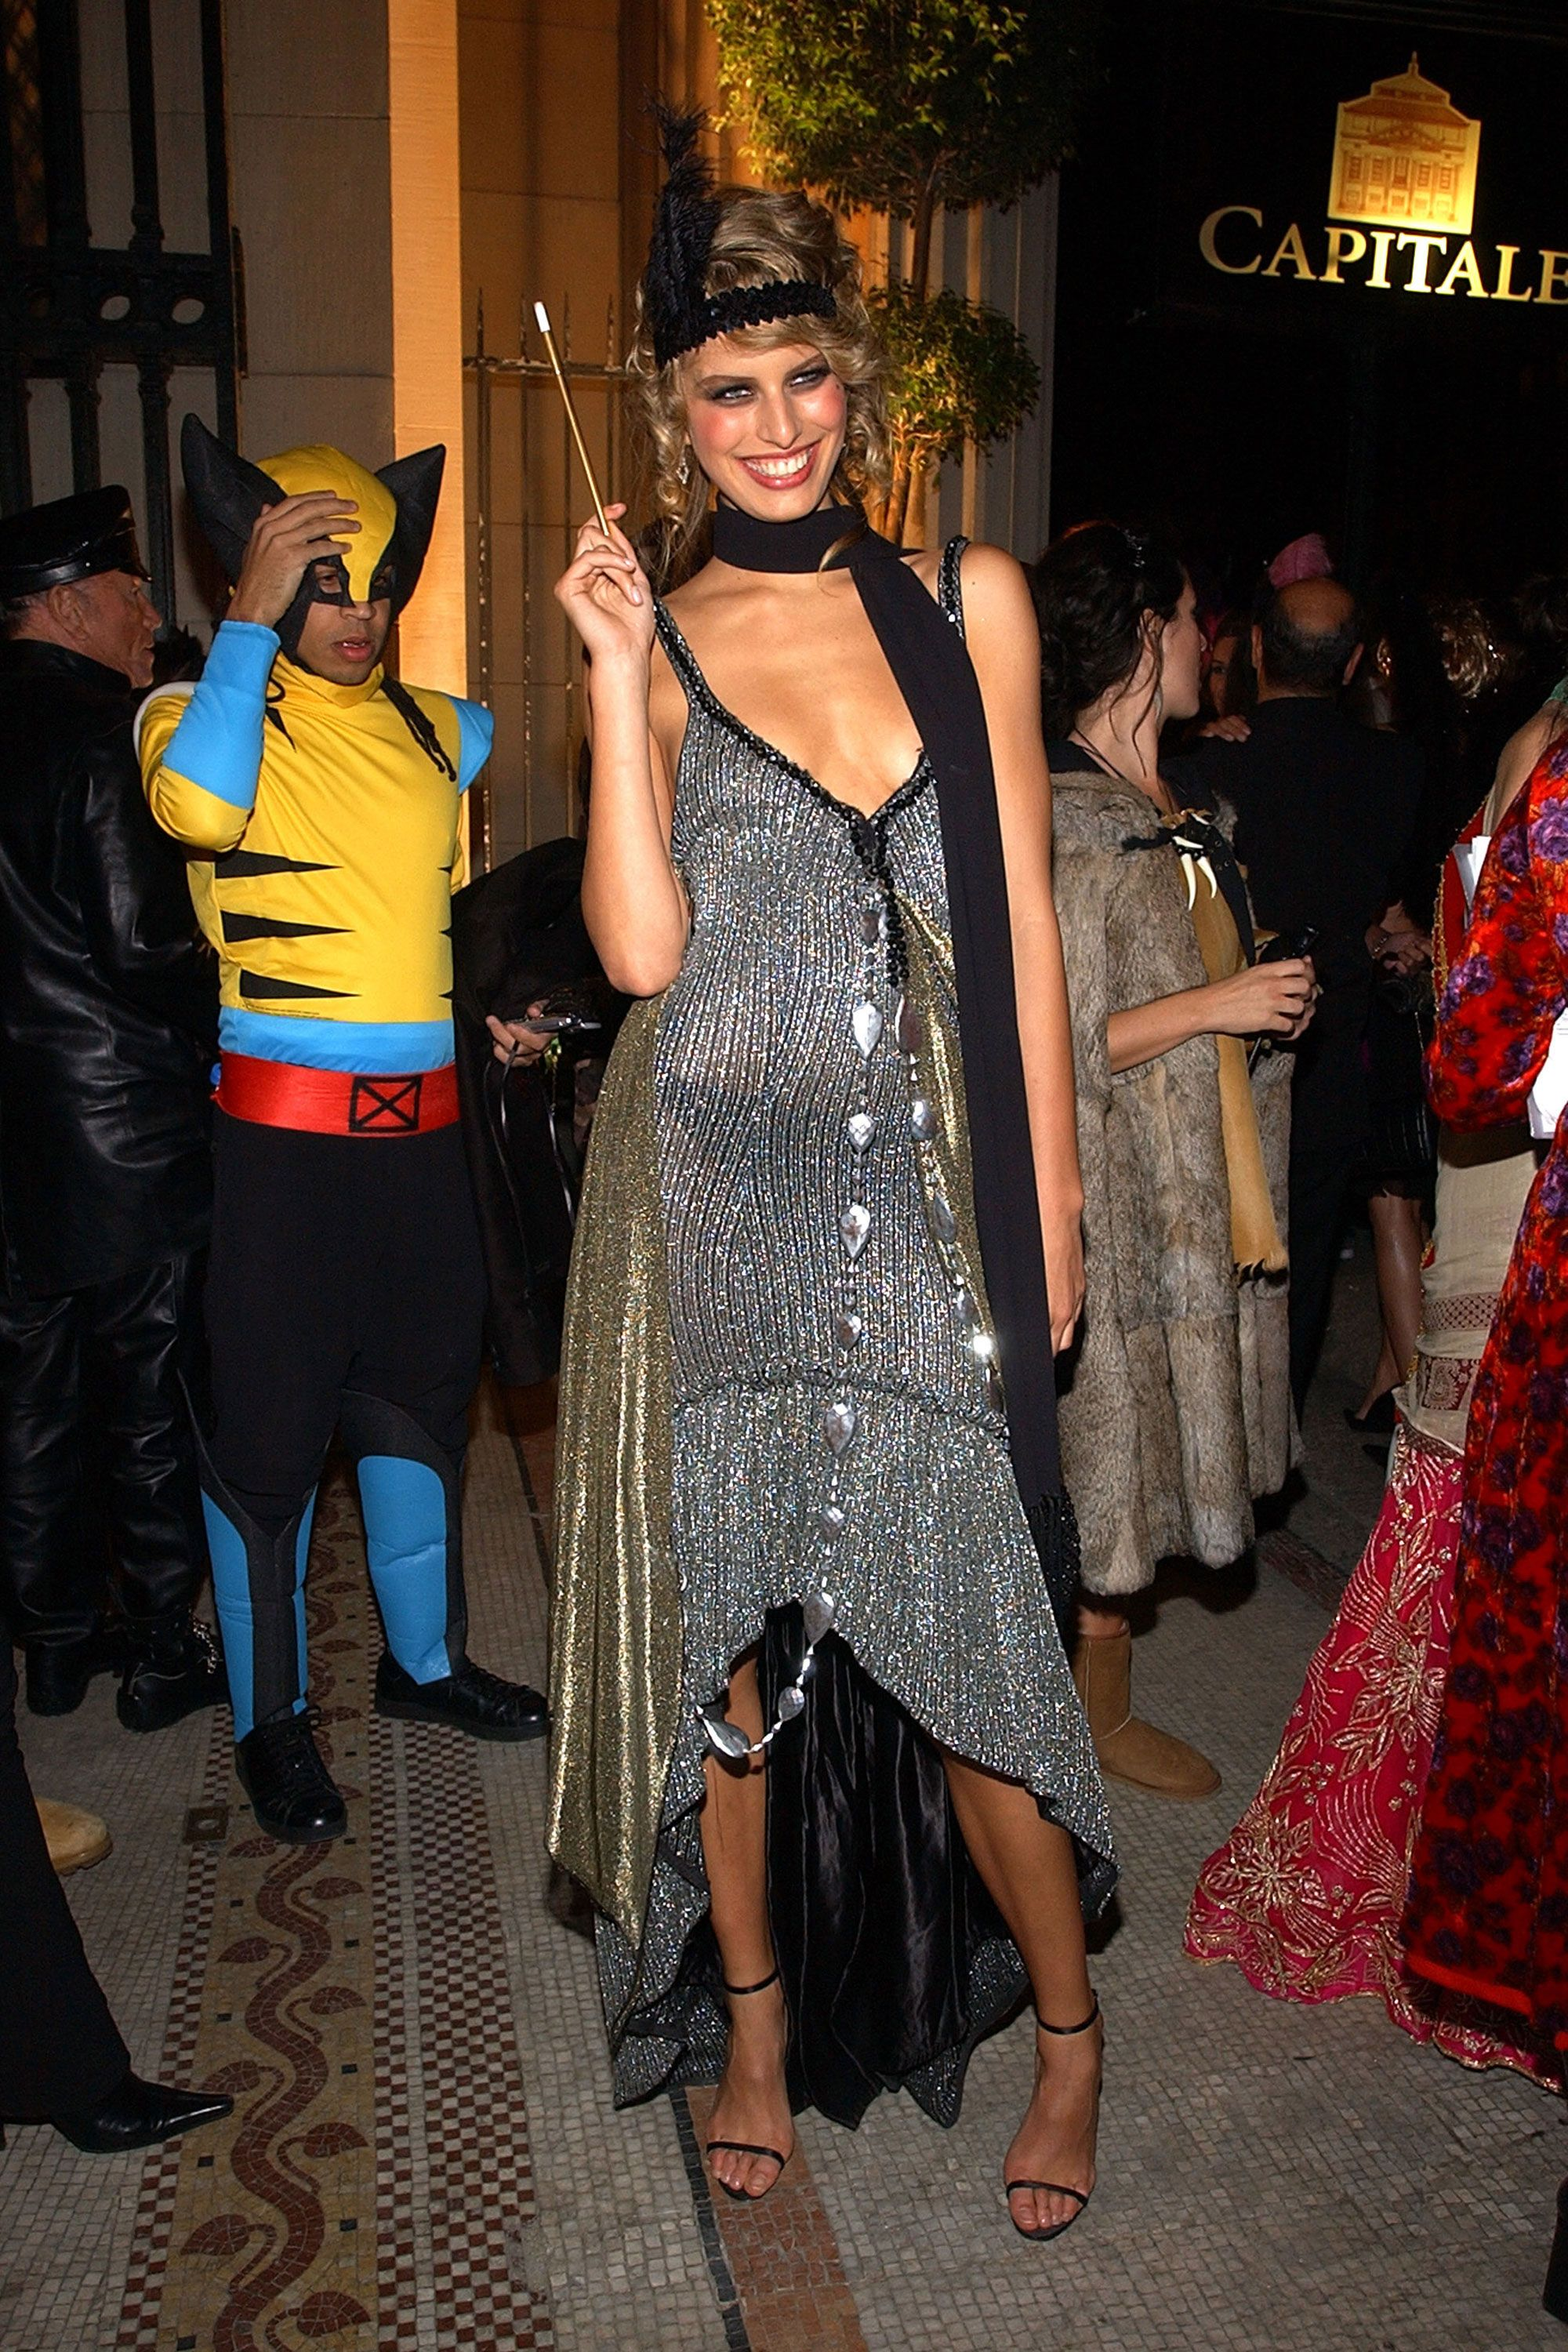 60 Best Celebrity Halloween Costumes - Top Celeb Costume Ideas